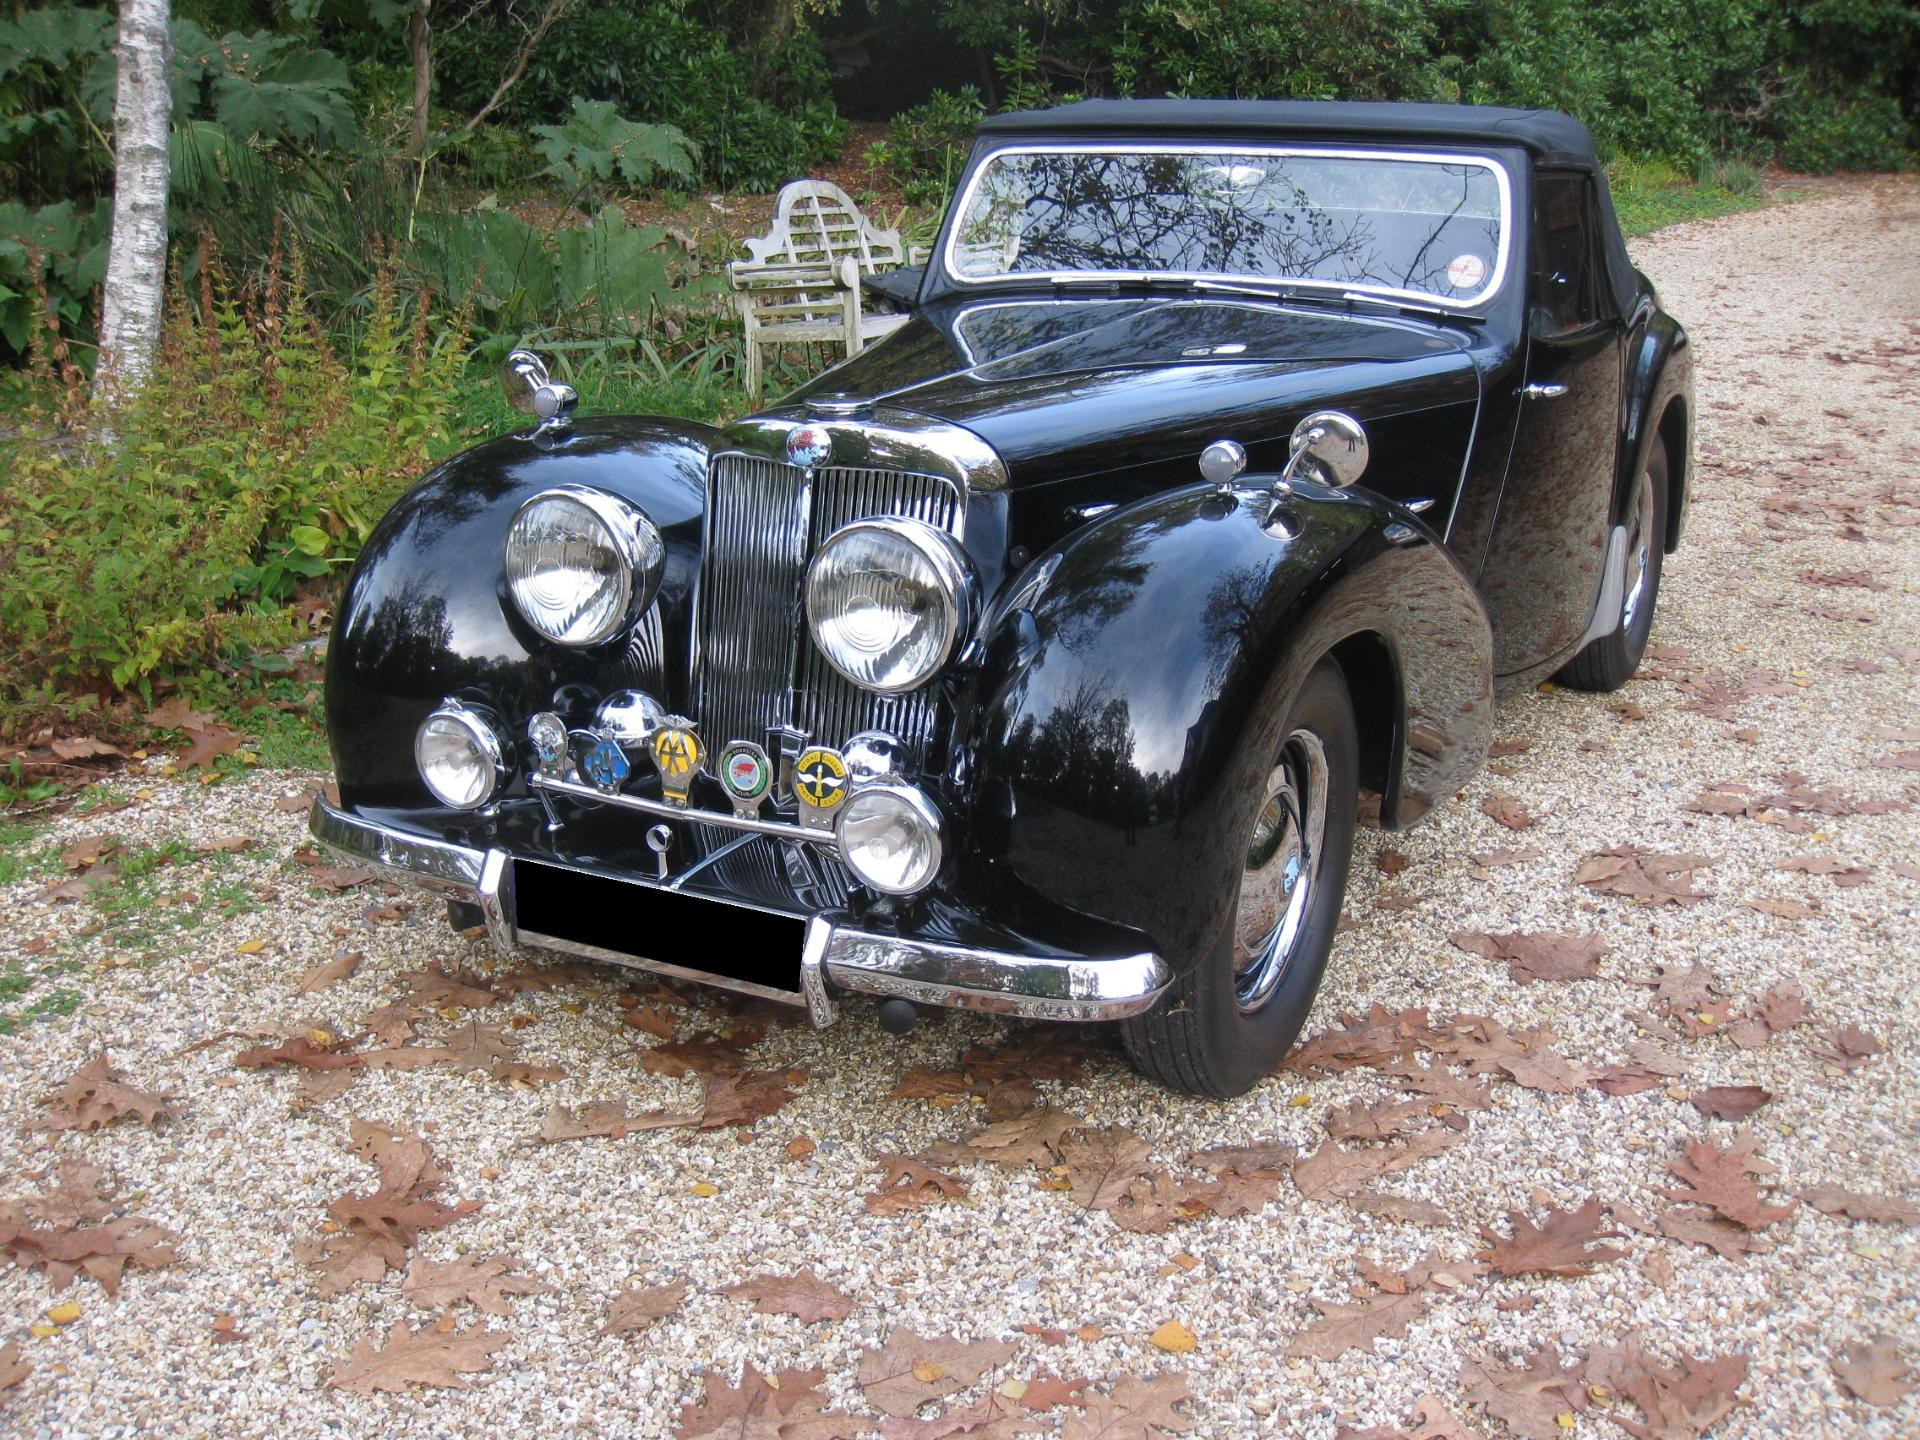 1946 Triumph Roadster Roadster For Sale In Landford, Wiltshire